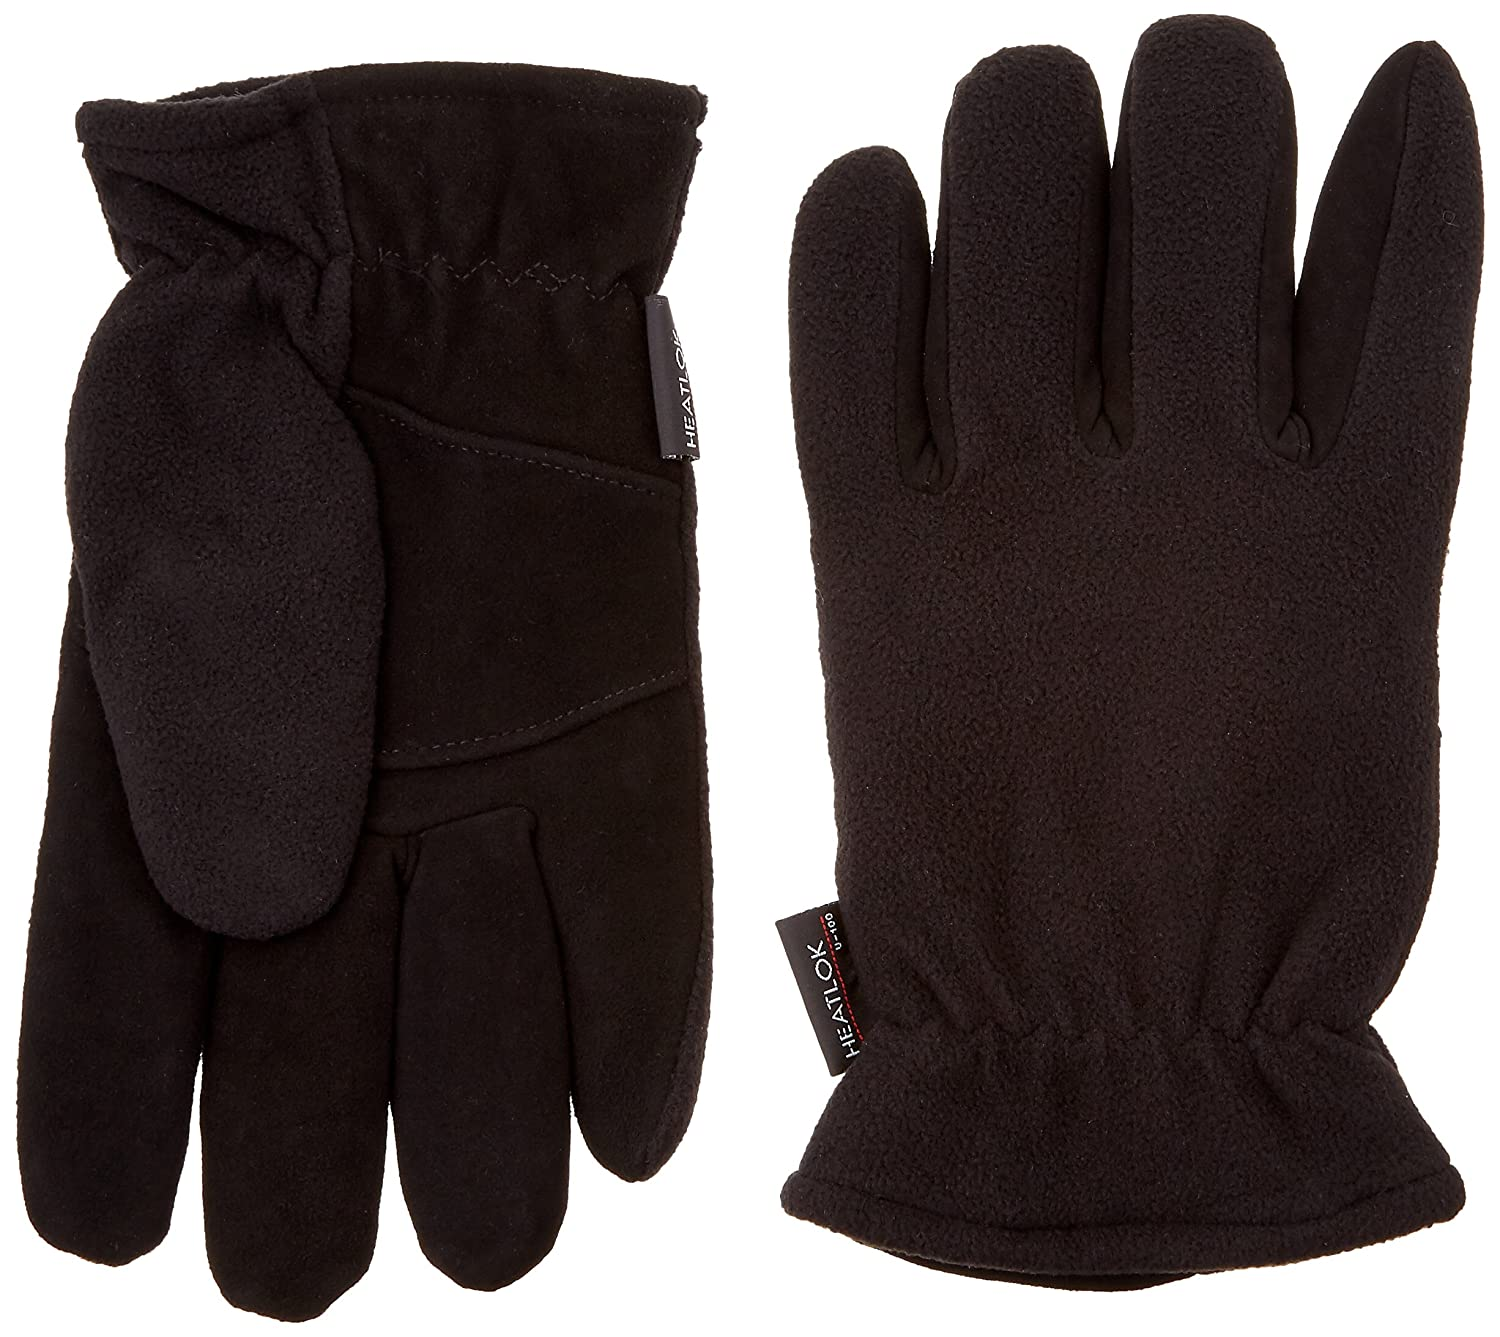 HEATLOK Deerskin Leather Palm Winter Warm Gloves w Polar Fleece Lining (Small)